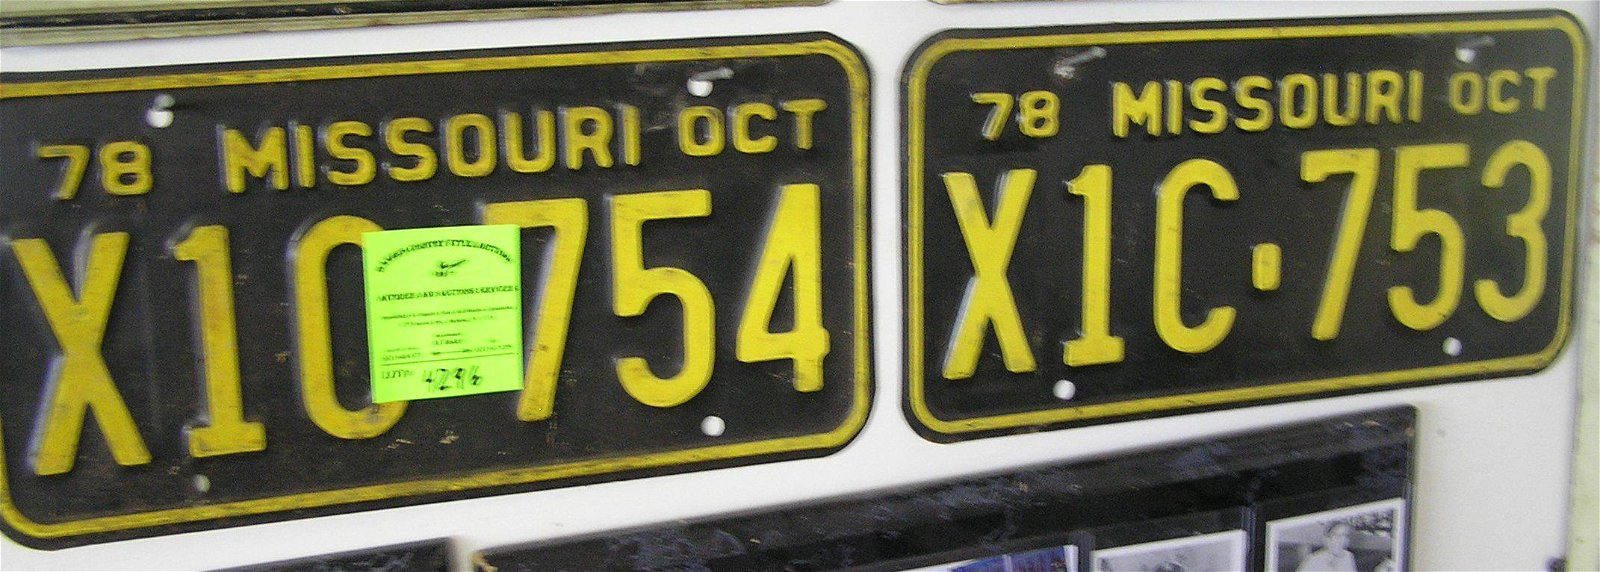 Pair of vintage Missouri license plates